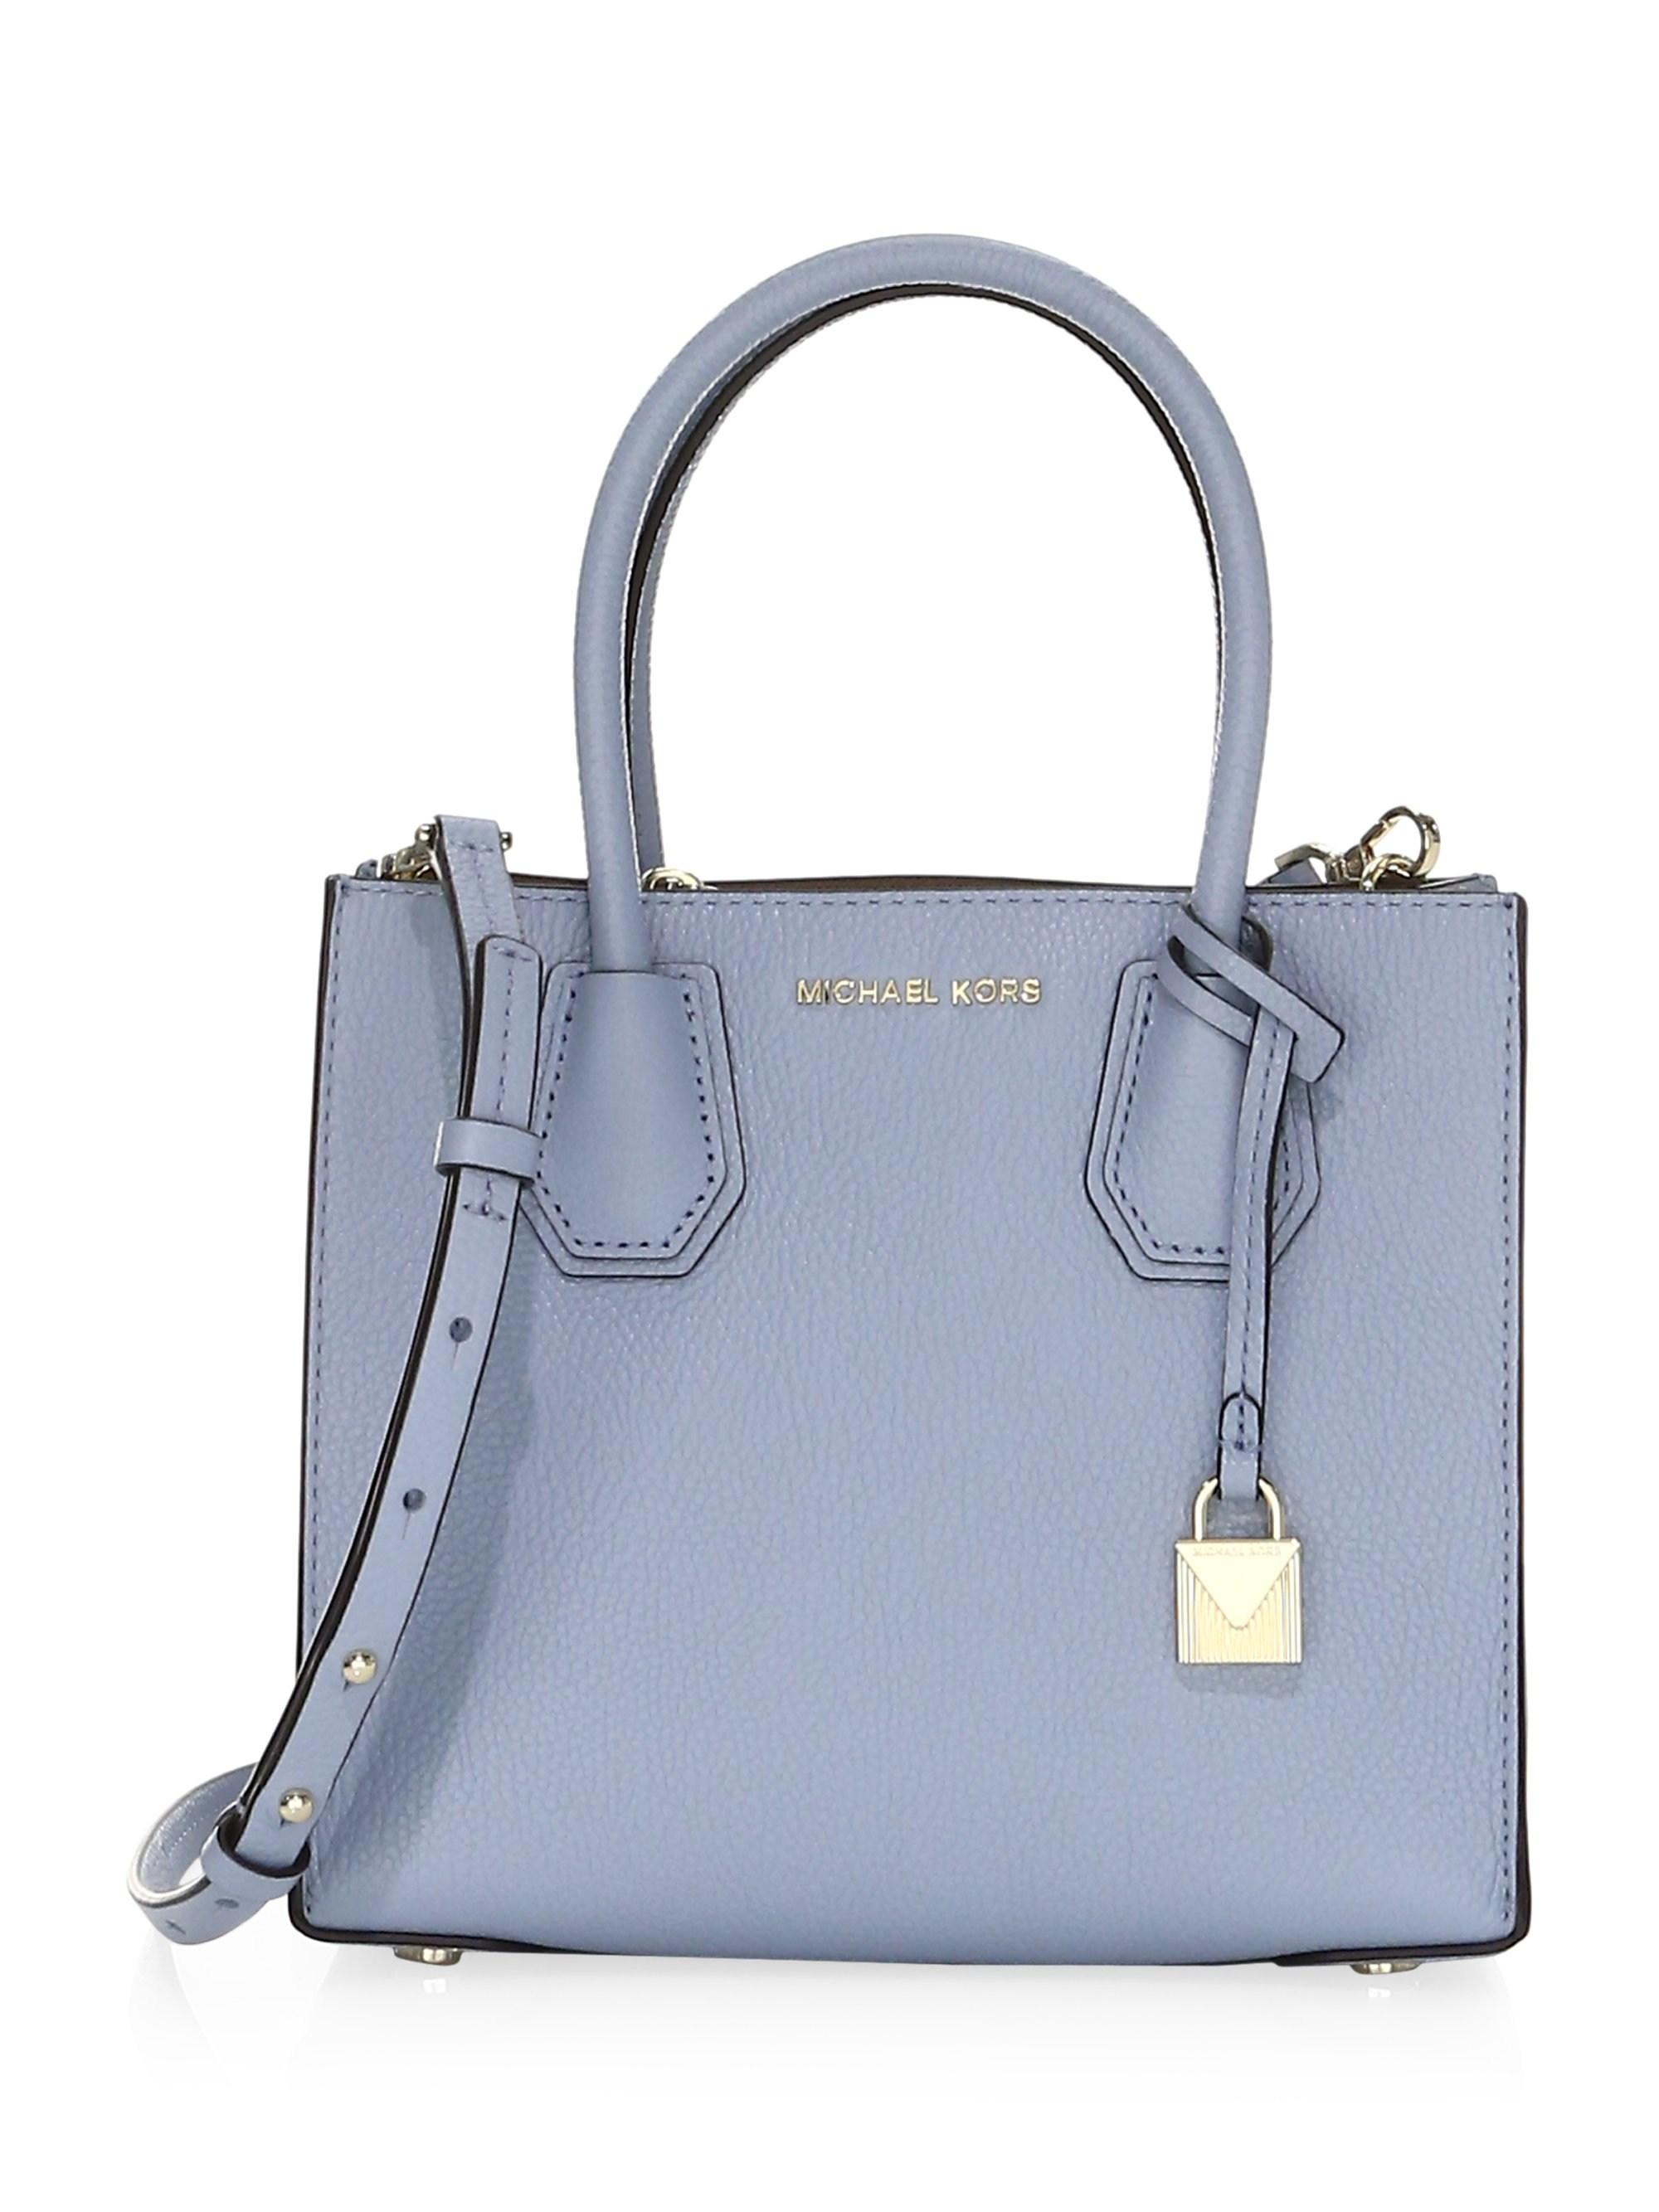 aa73b593eea7 Gallery. Previously sold at: Saks Fifth Avenue · Women's Michael Kors ...